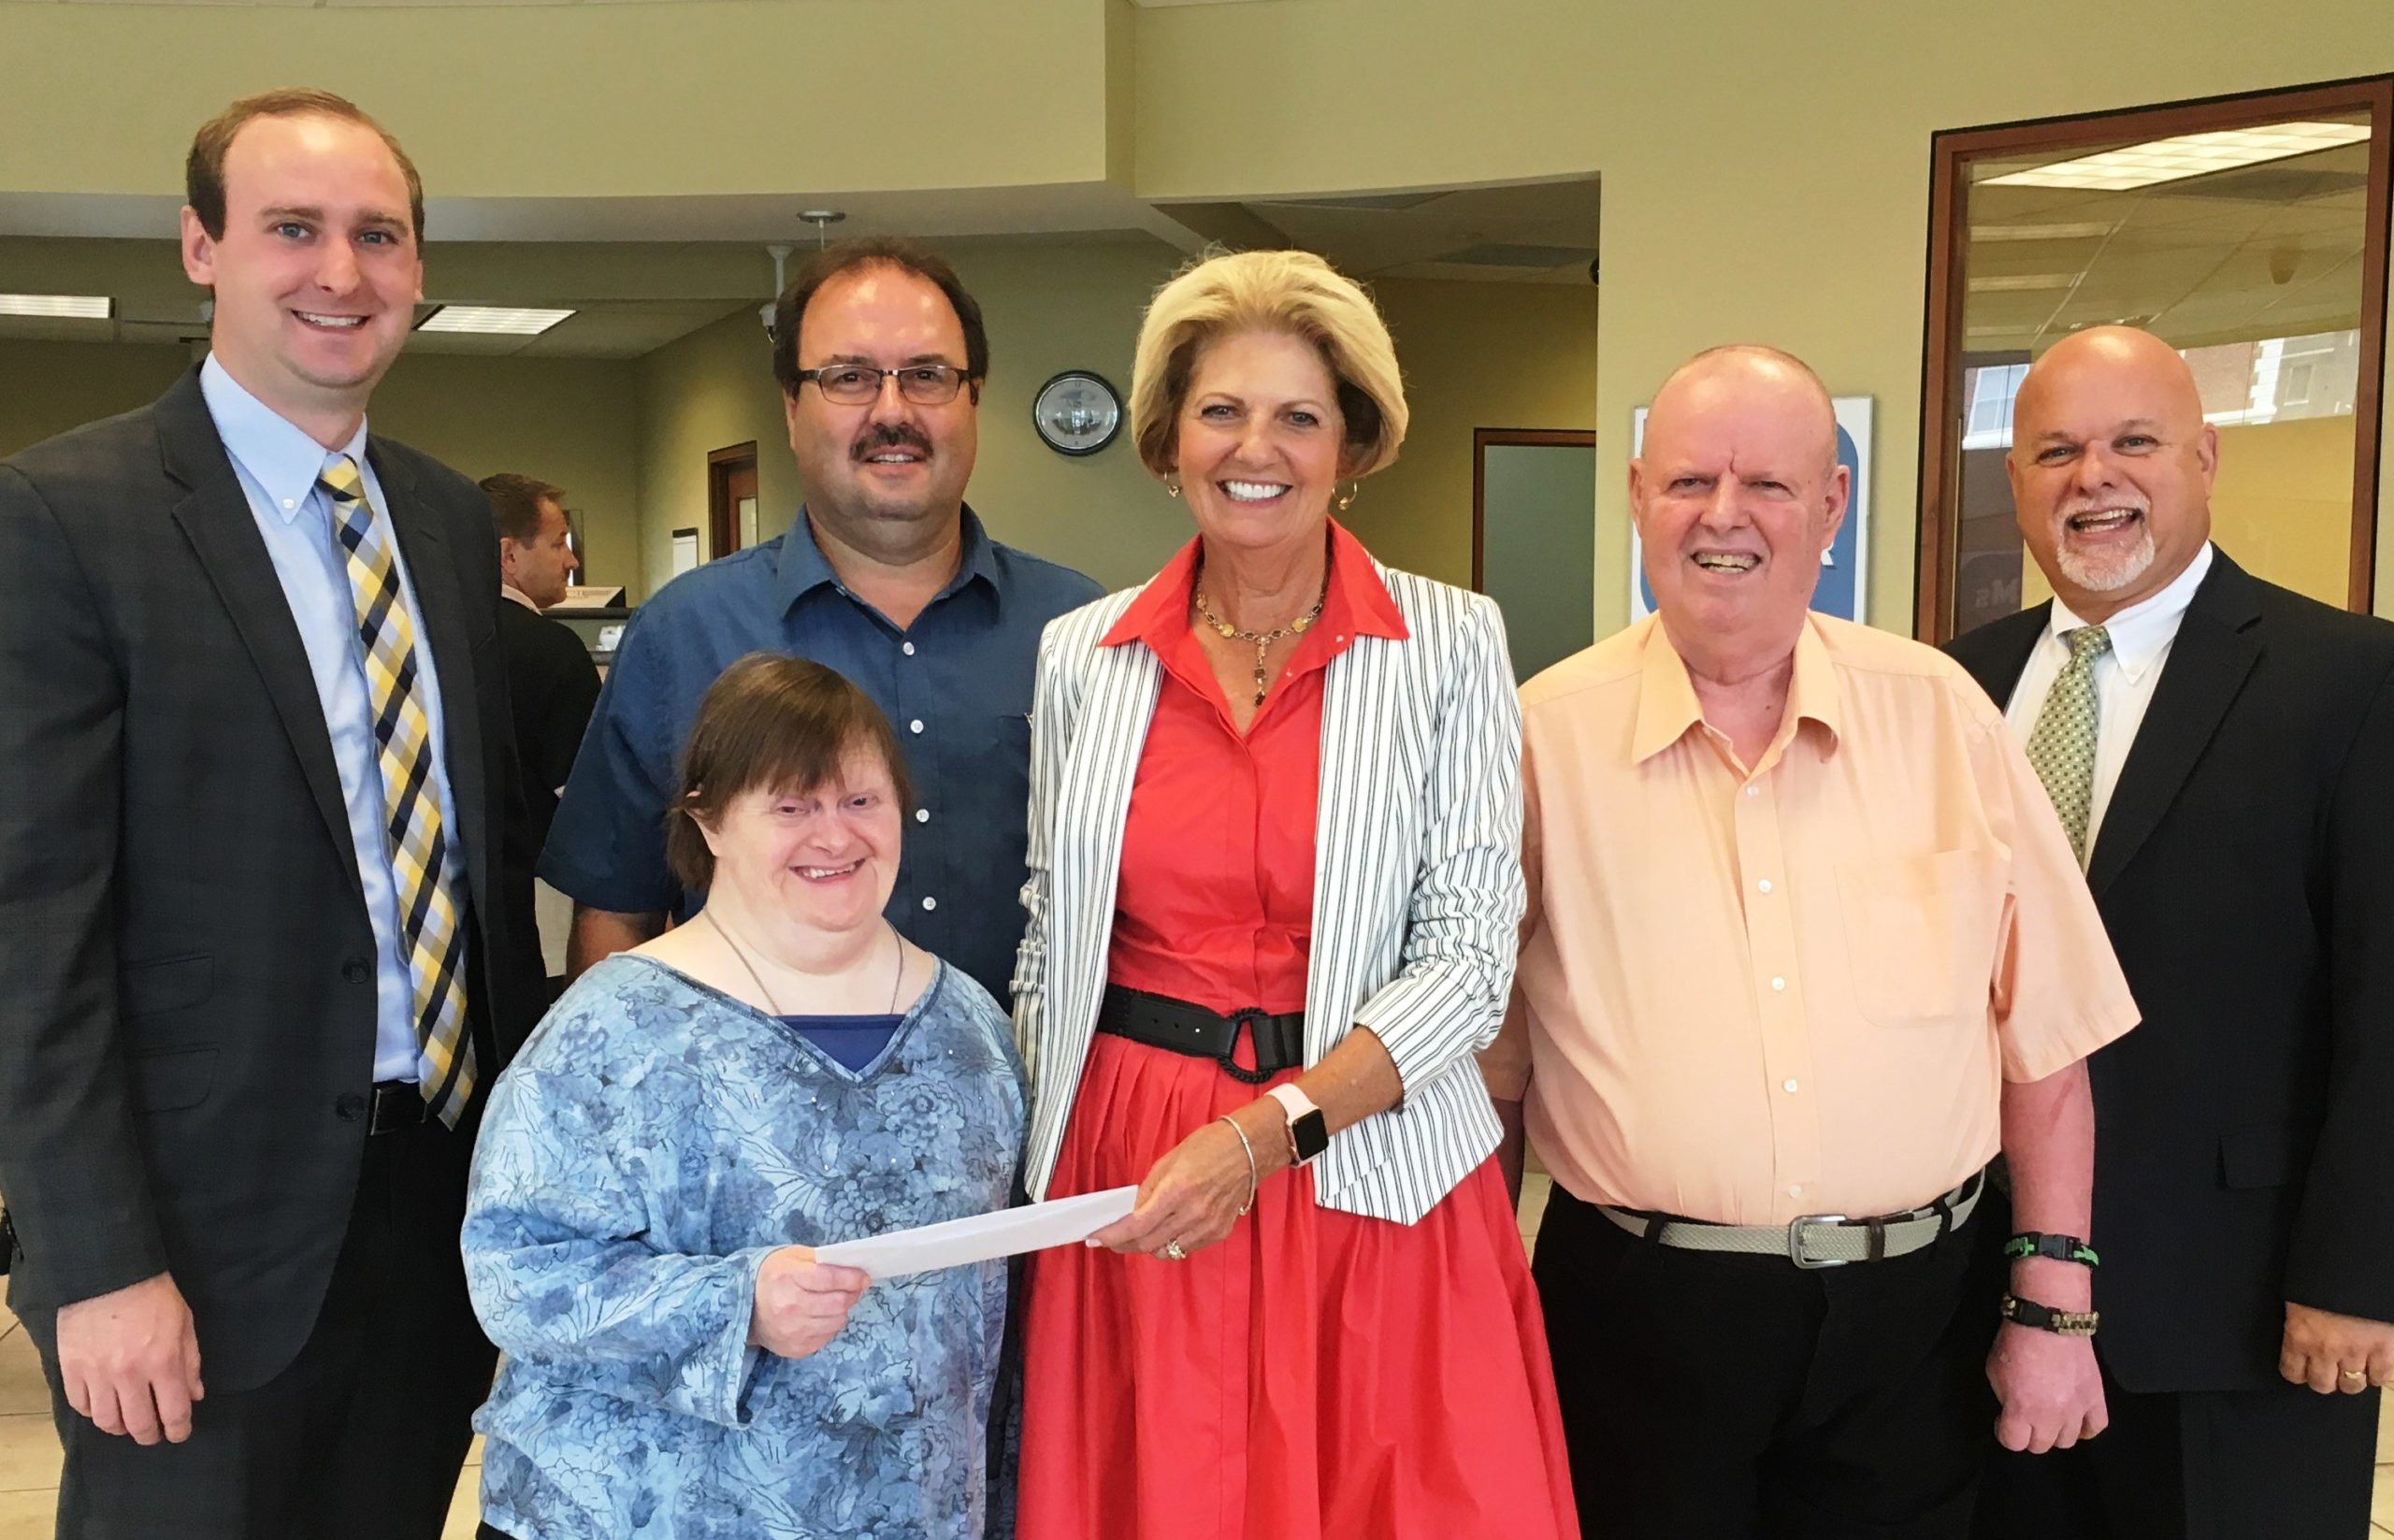 Community Support Systems Receives Donation From Koboldt Charitable Trust